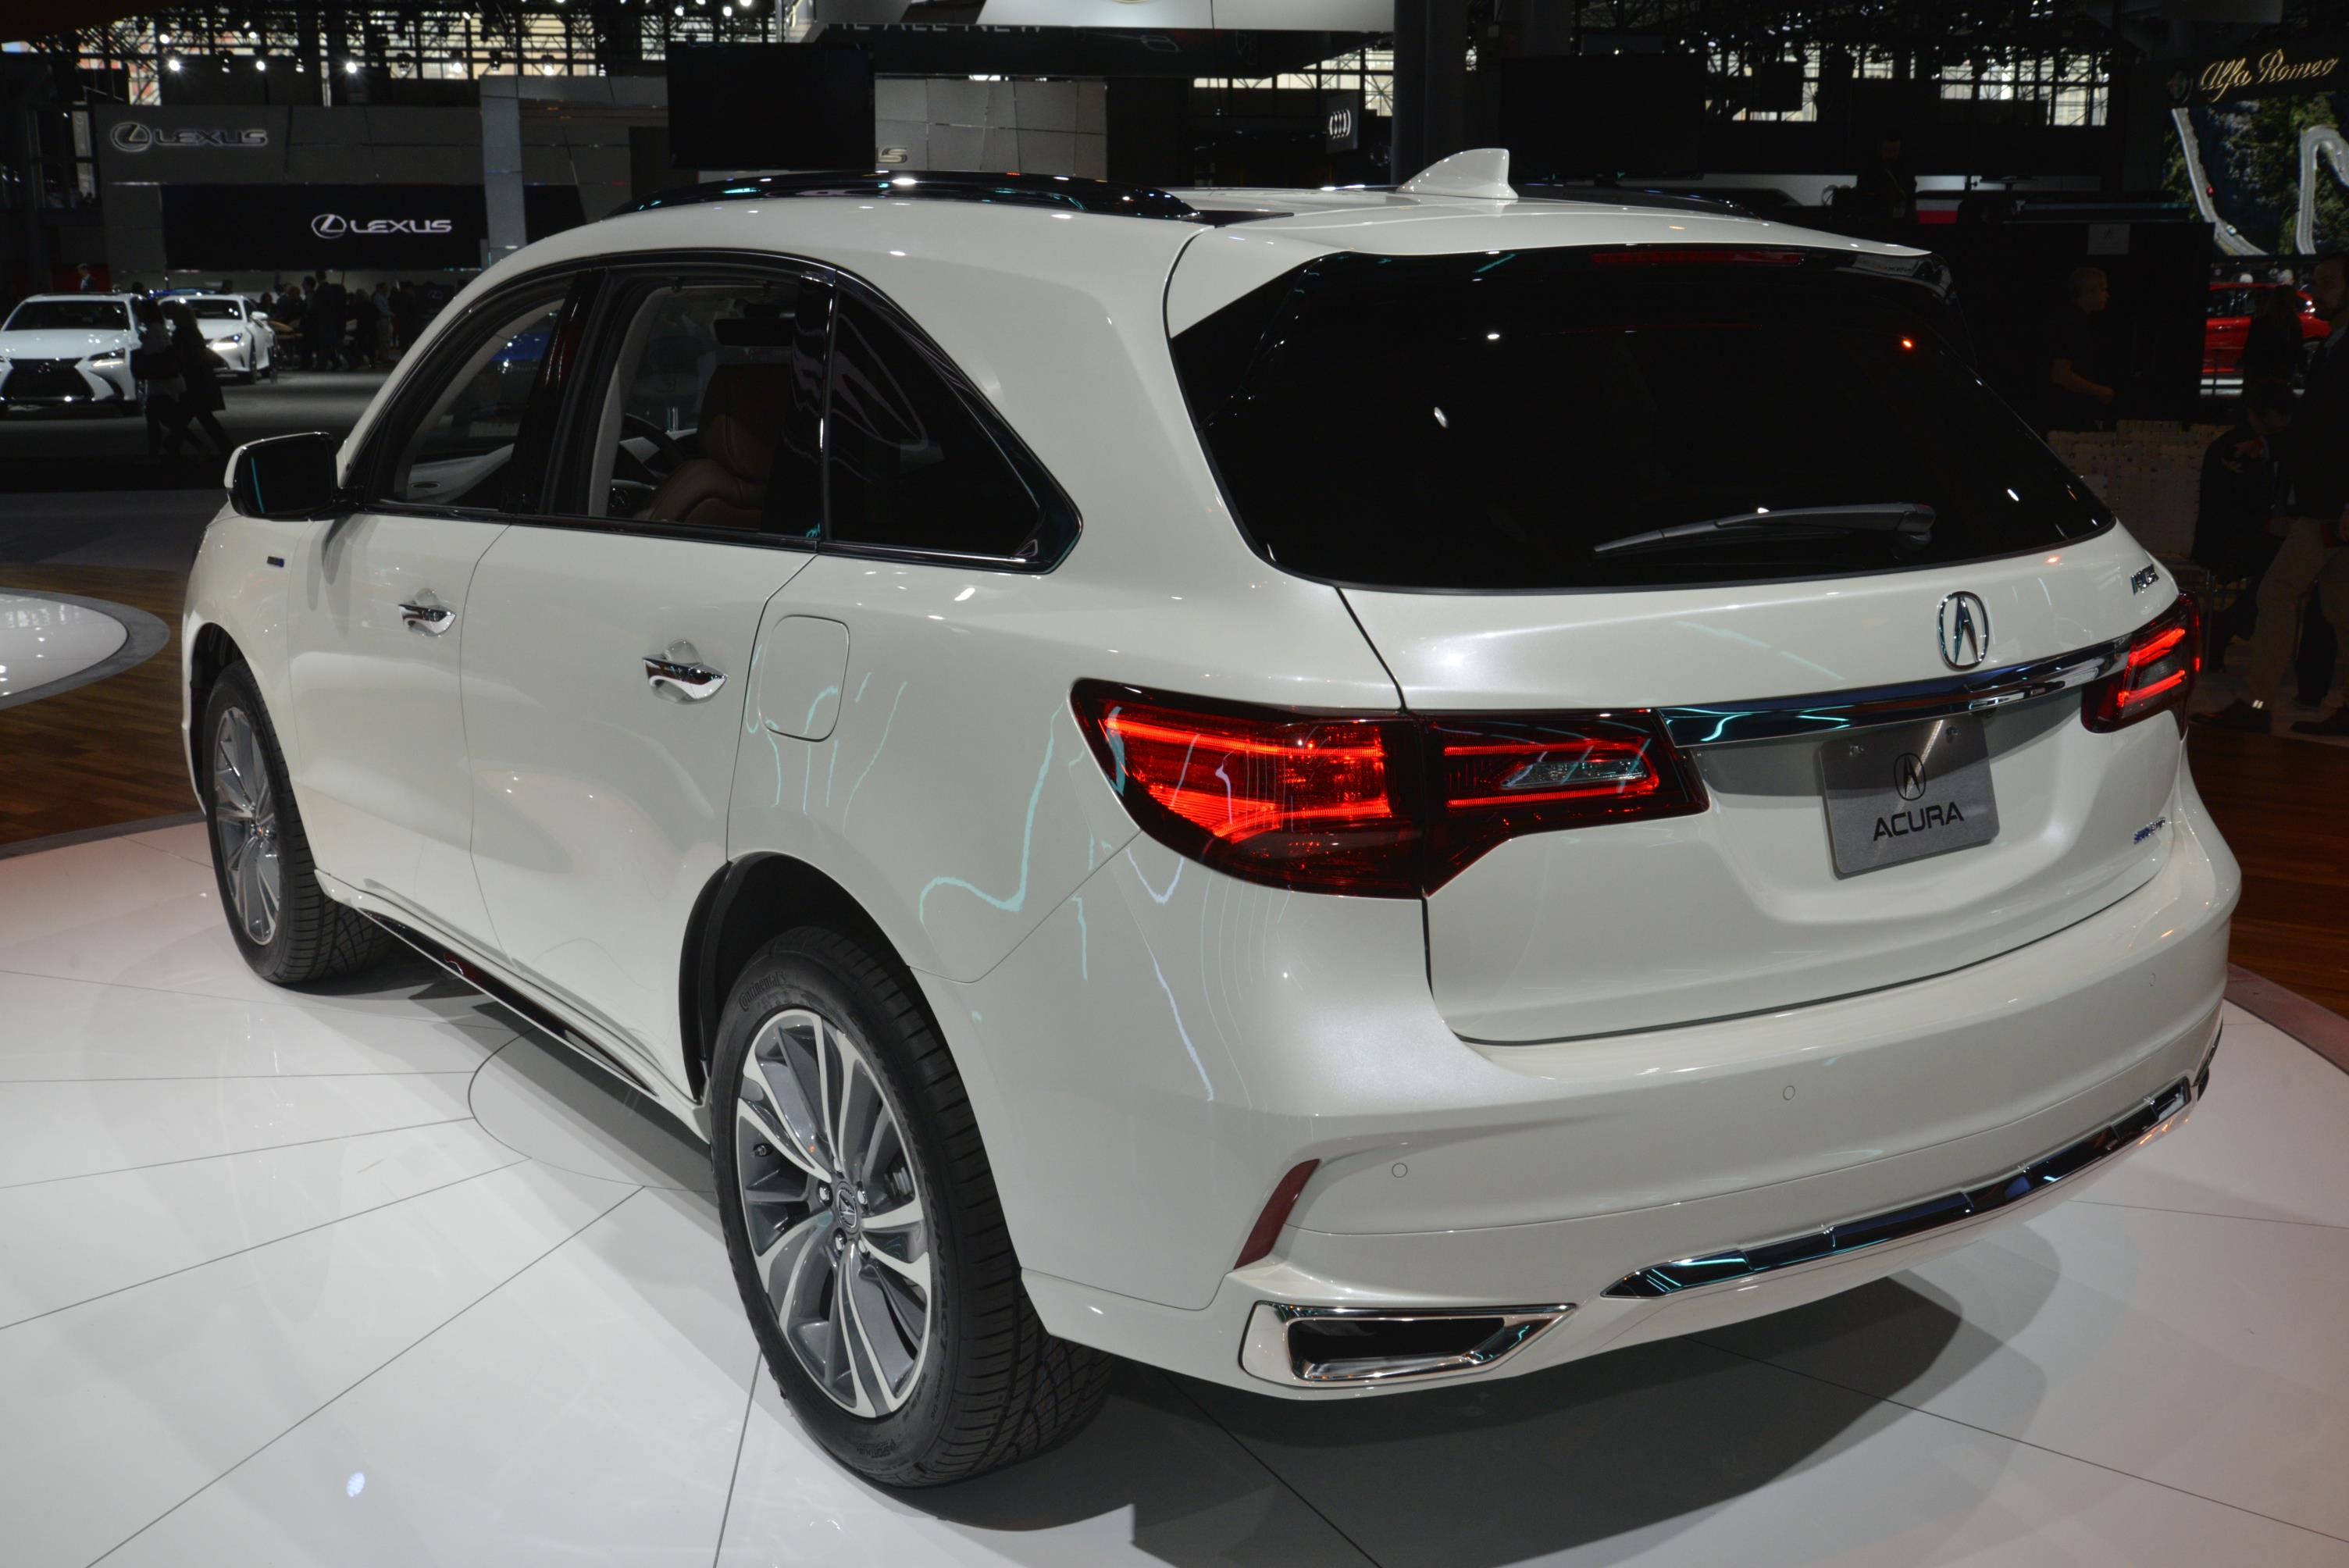 2017 acura mdx breaks the norm with 3 motor sport hybrid. Black Bedroom Furniture Sets. Home Design Ideas